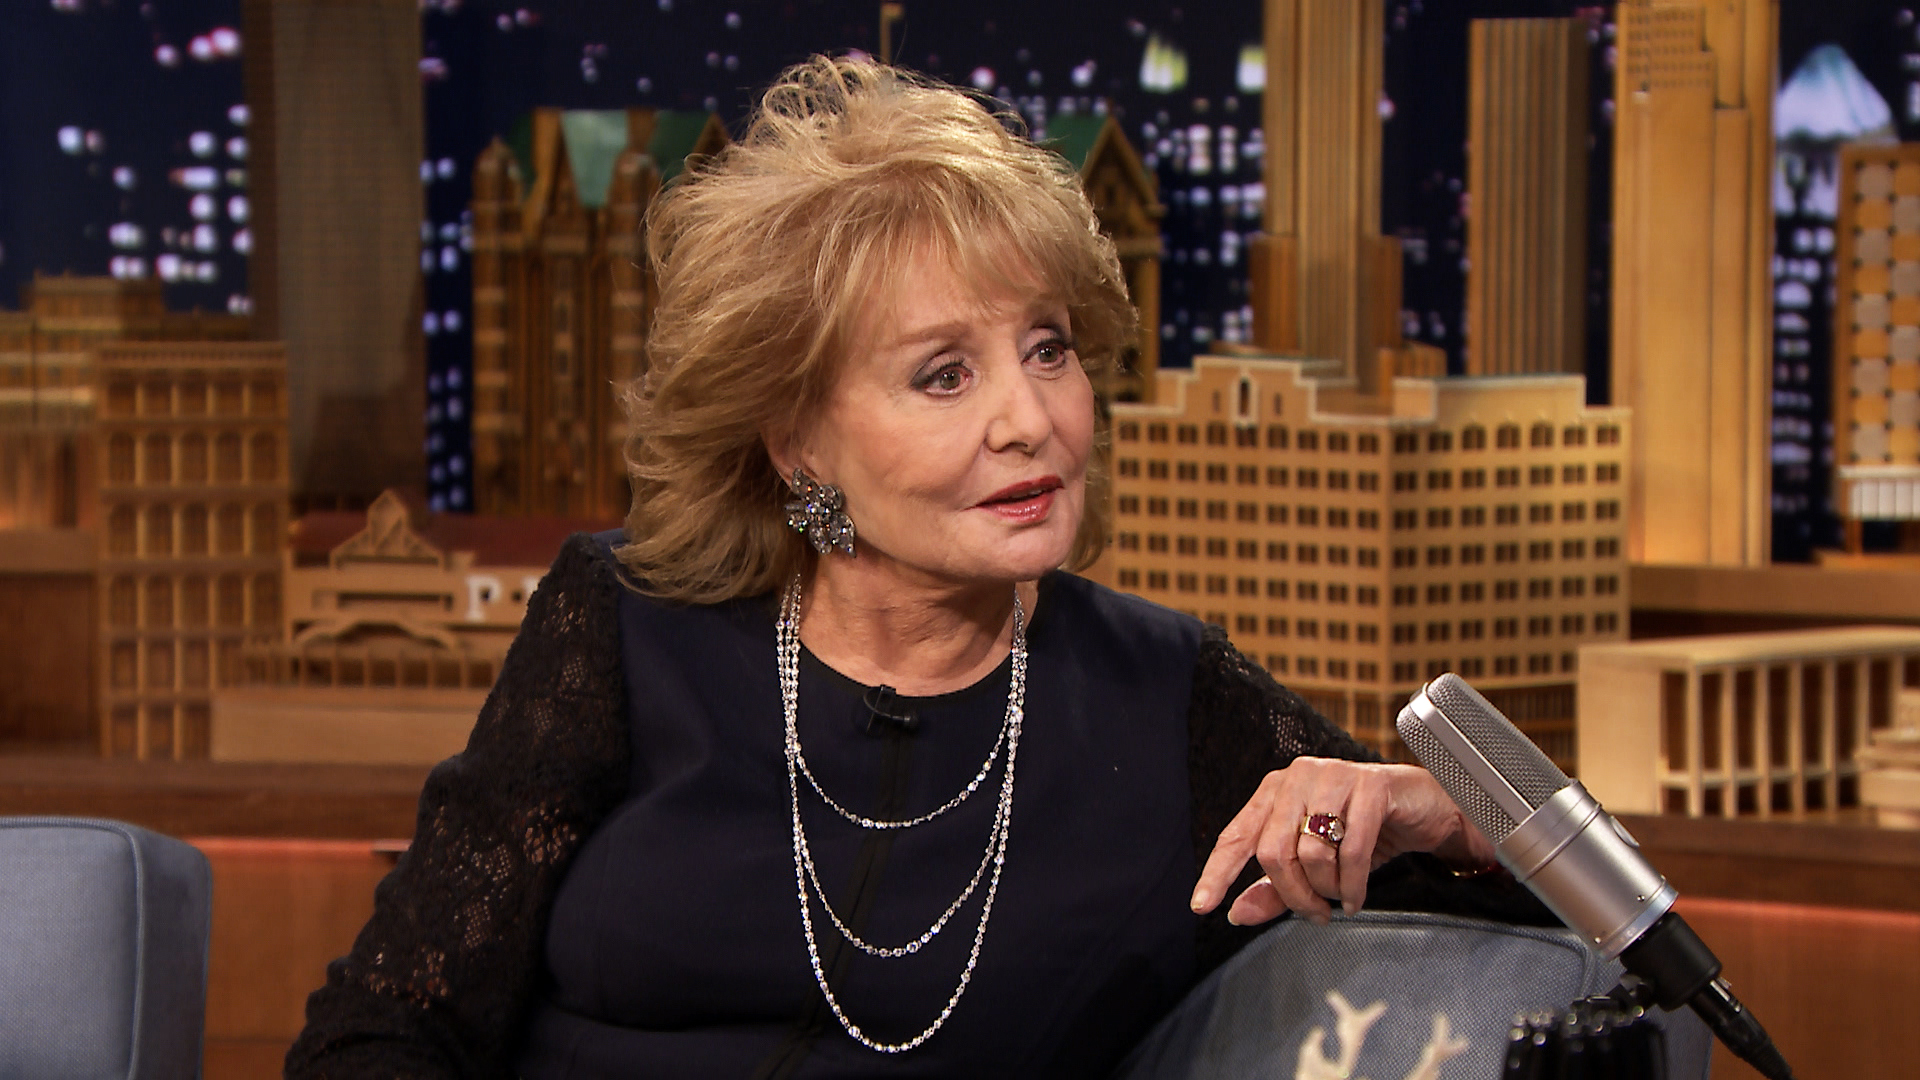 Barbara Walters Calls Warren Beatty Boring The Tonight Show